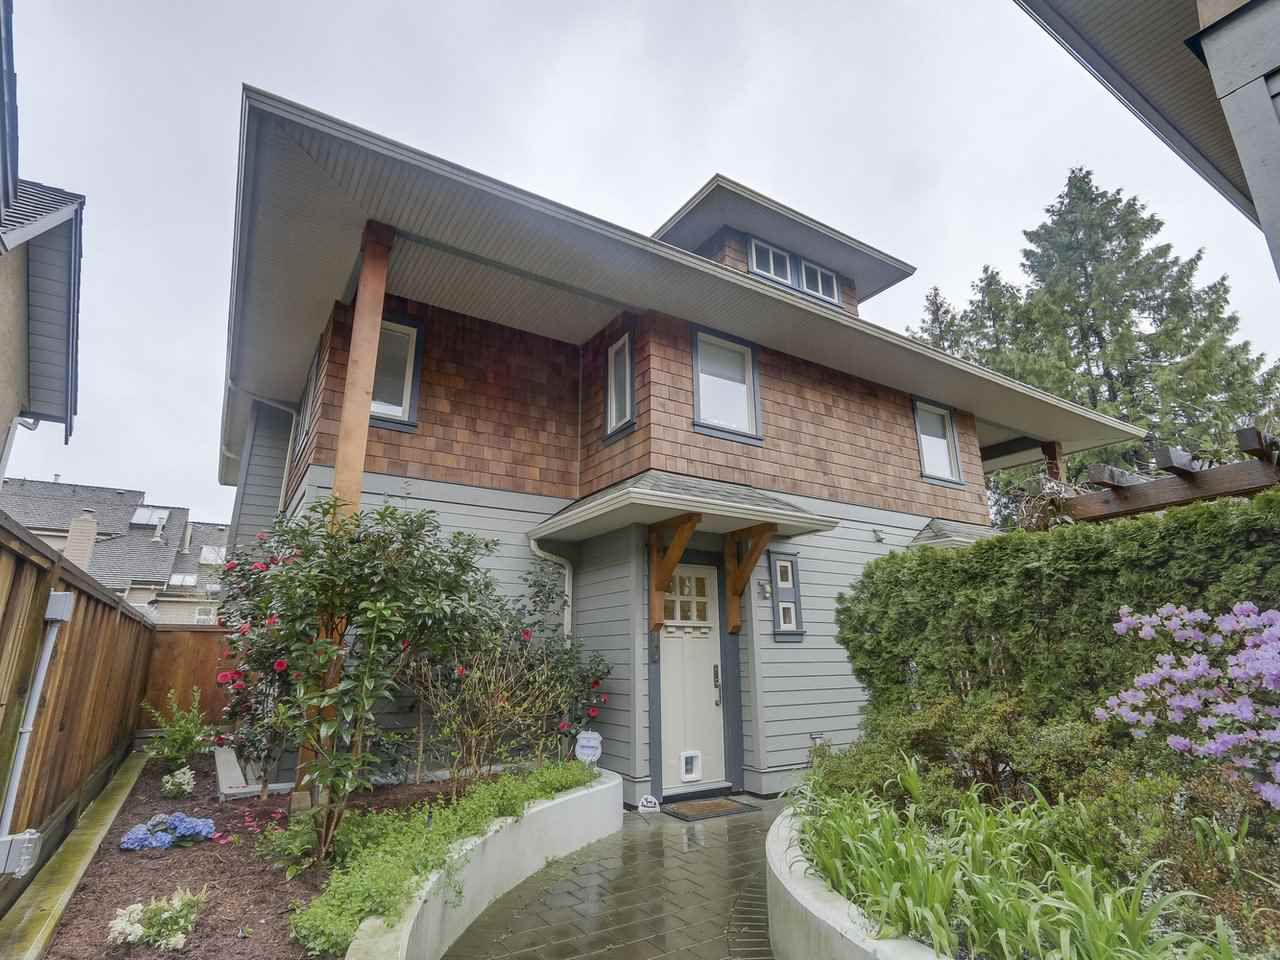 """Photo 1: Photos: 4 249 W 16TH Street in North Vancouver: Central Lonsdale House 1/2 Duplex for sale in """"THE WEST"""" : MLS®# R2262955"""